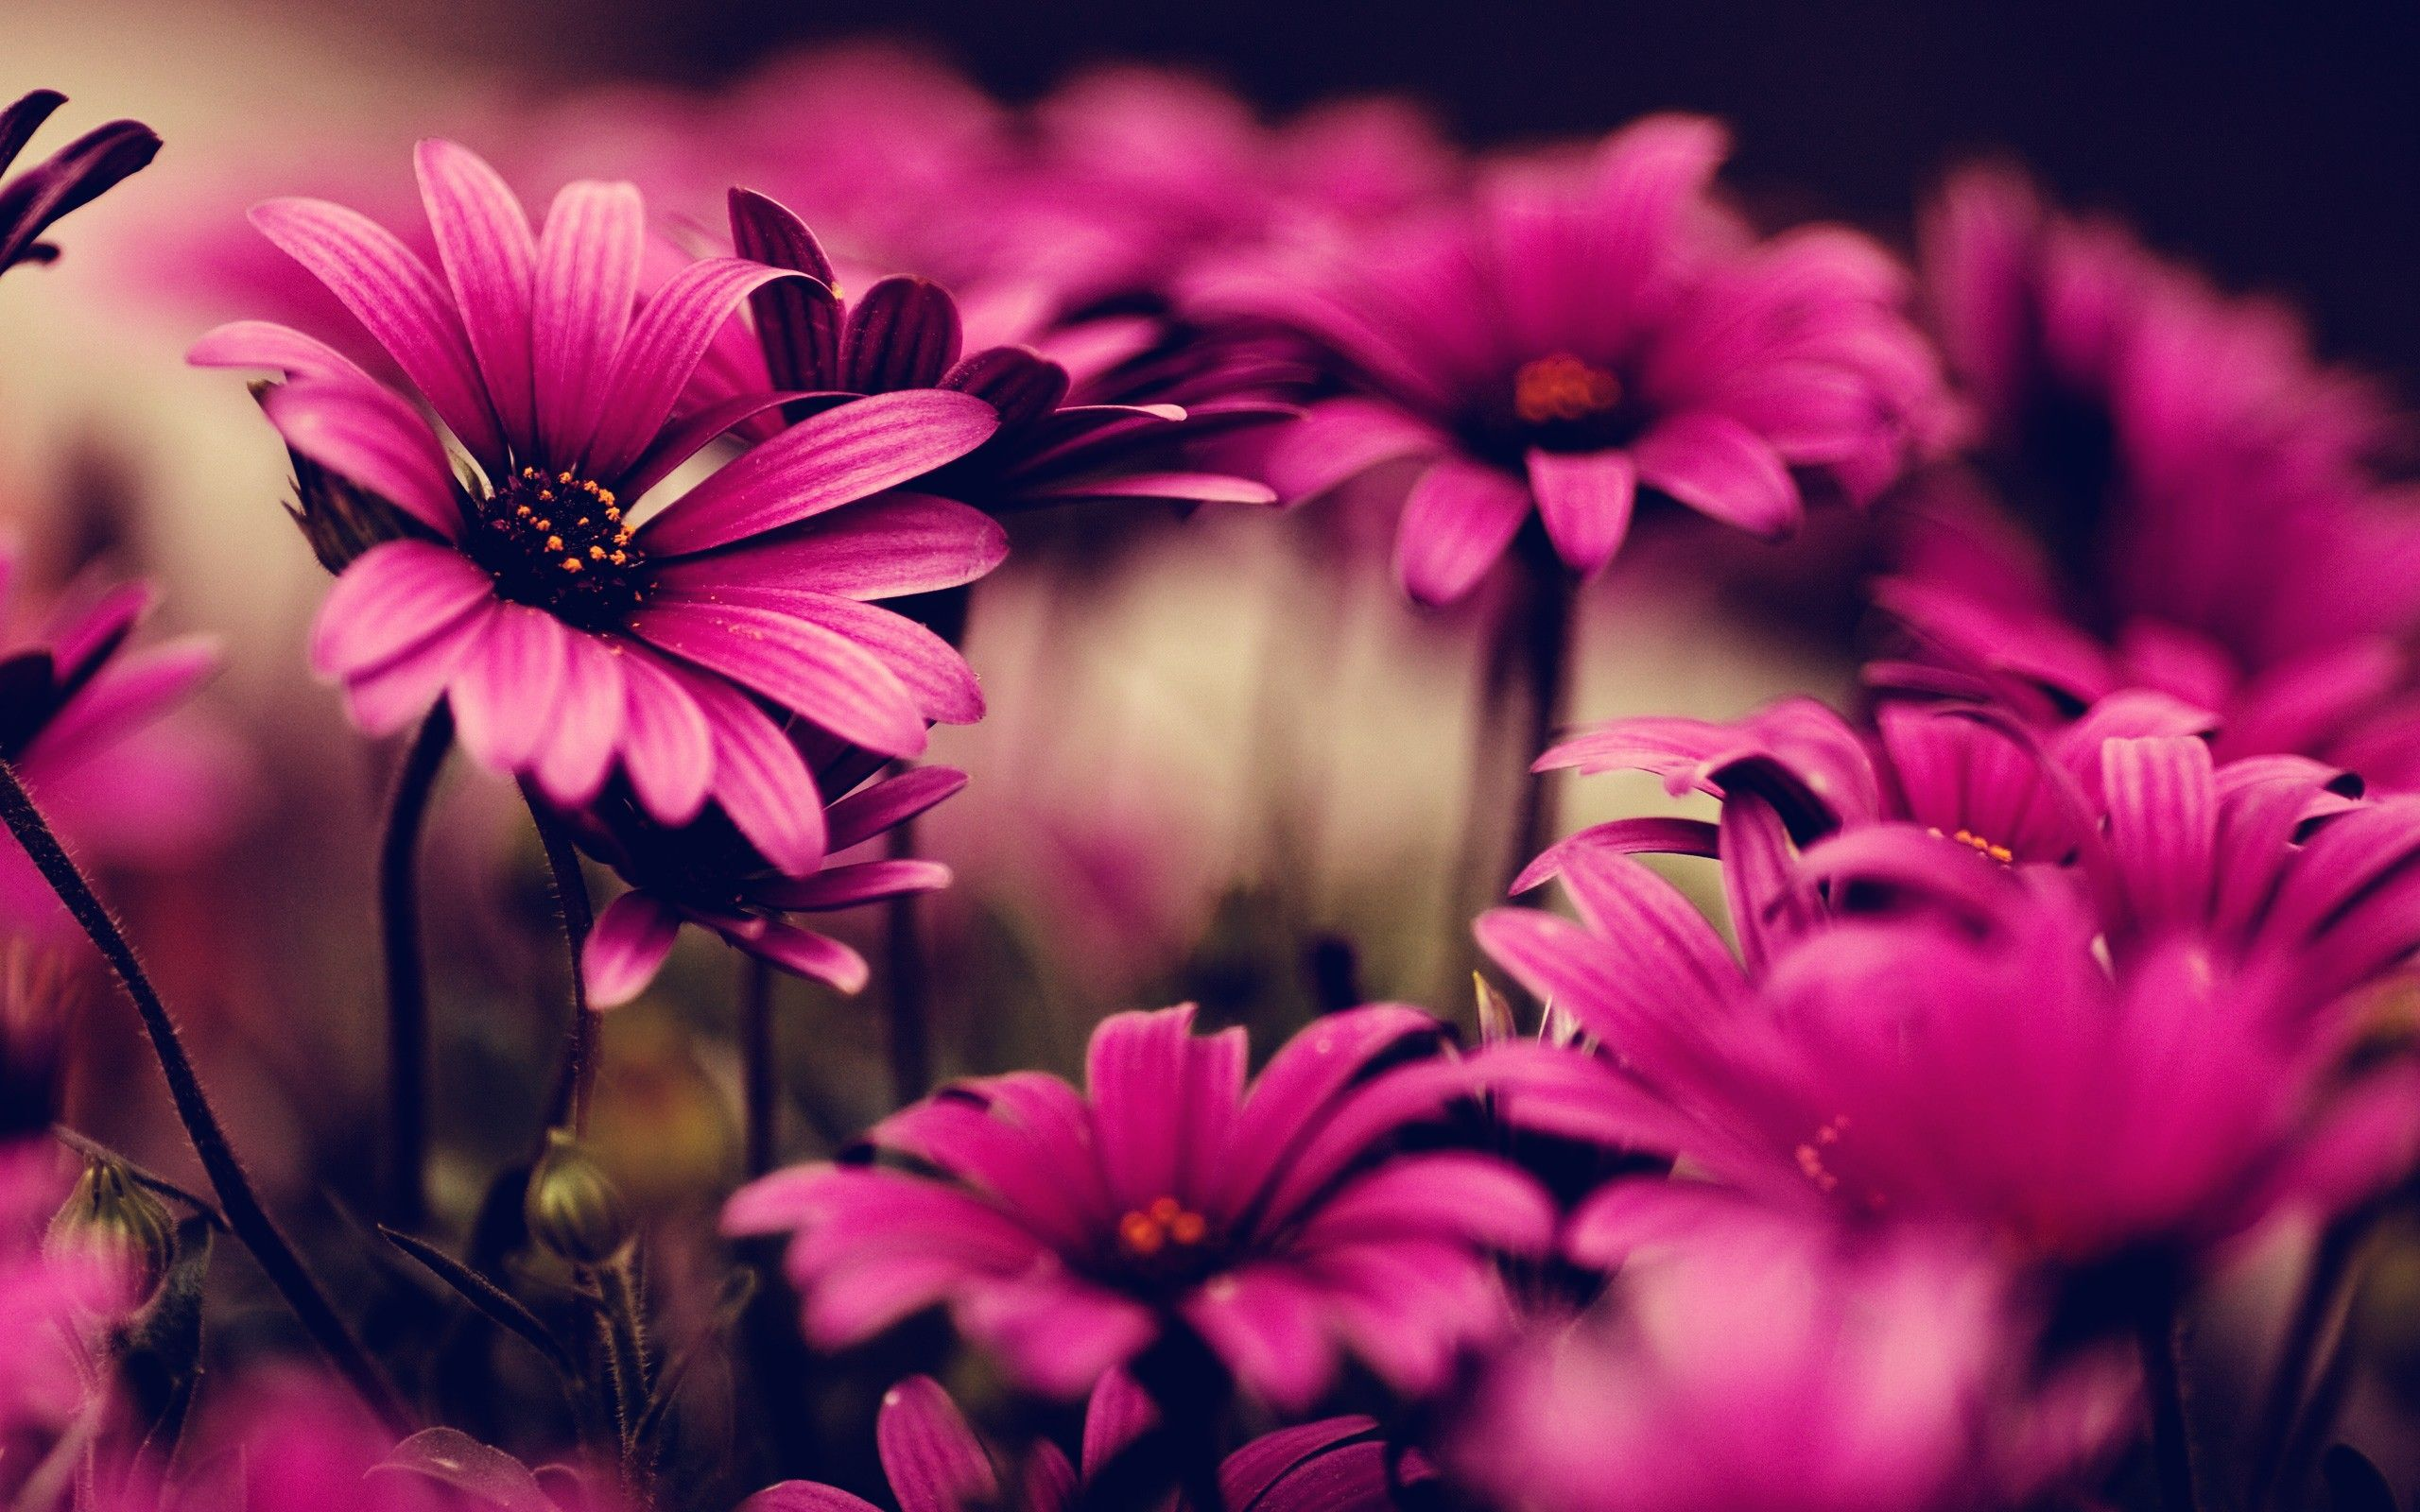 Ultra HD Wallpaper, flower 4K | pink flowers photography ...